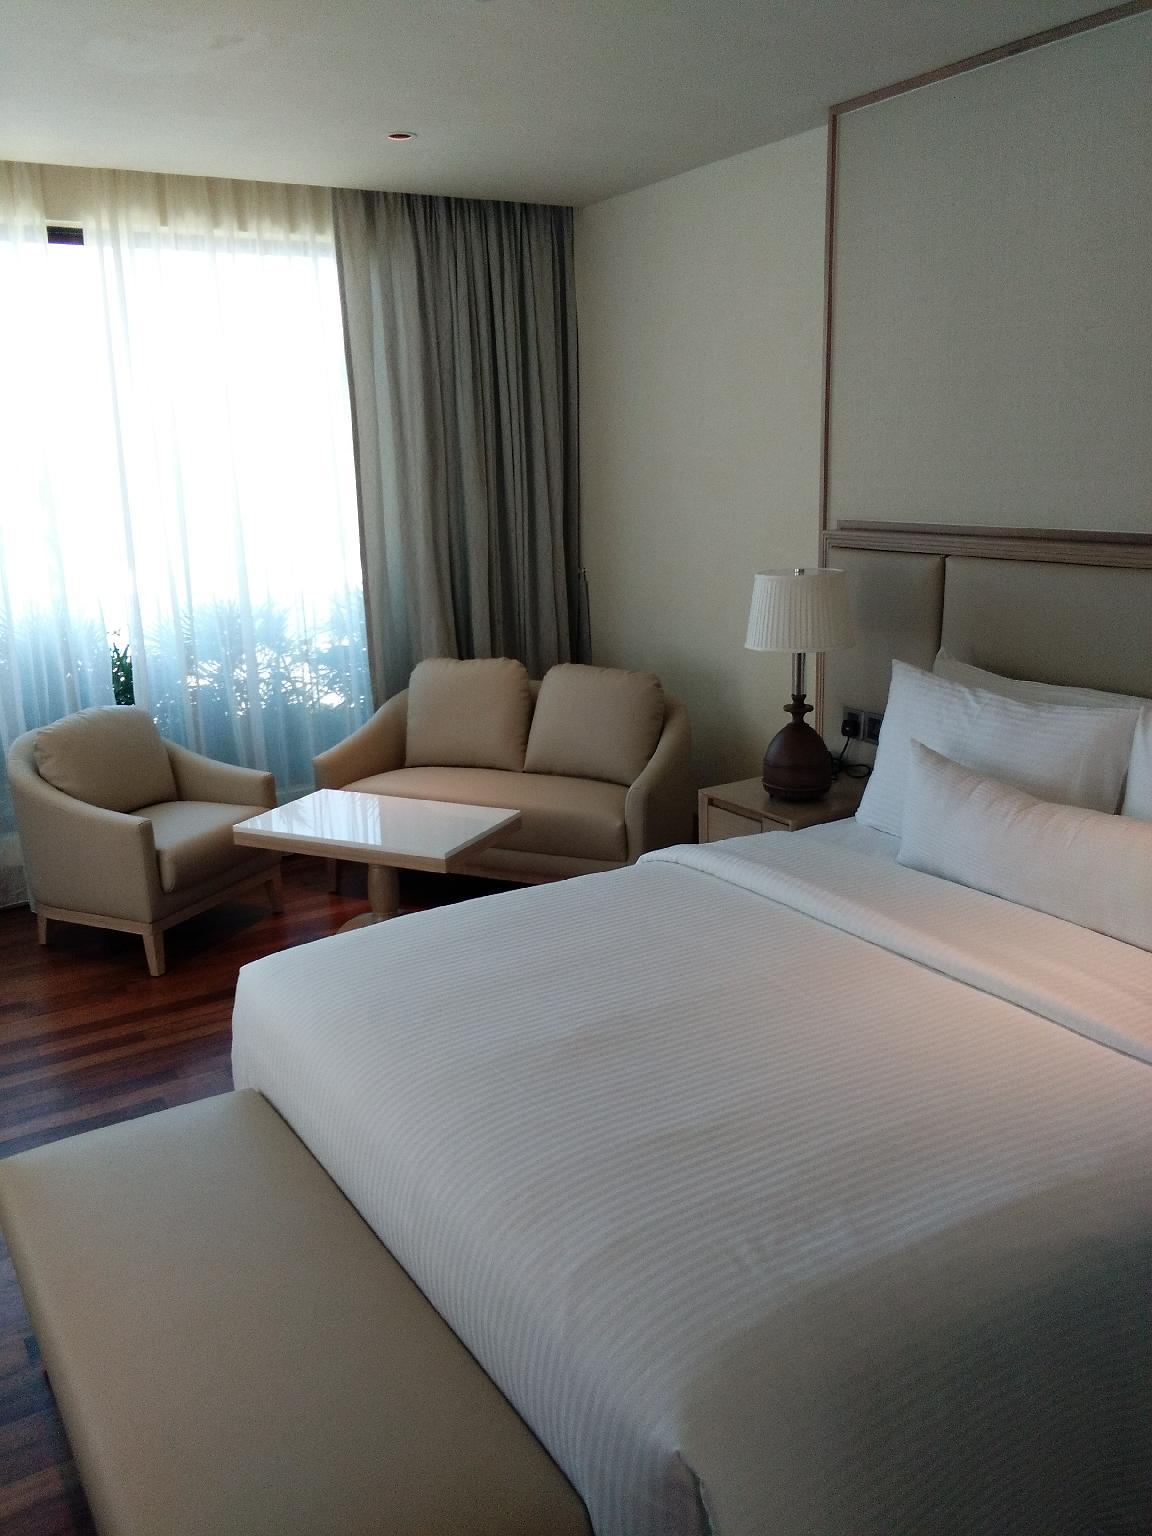 海景套房 - 有陽台 (Ocean View Suite with Balcony)